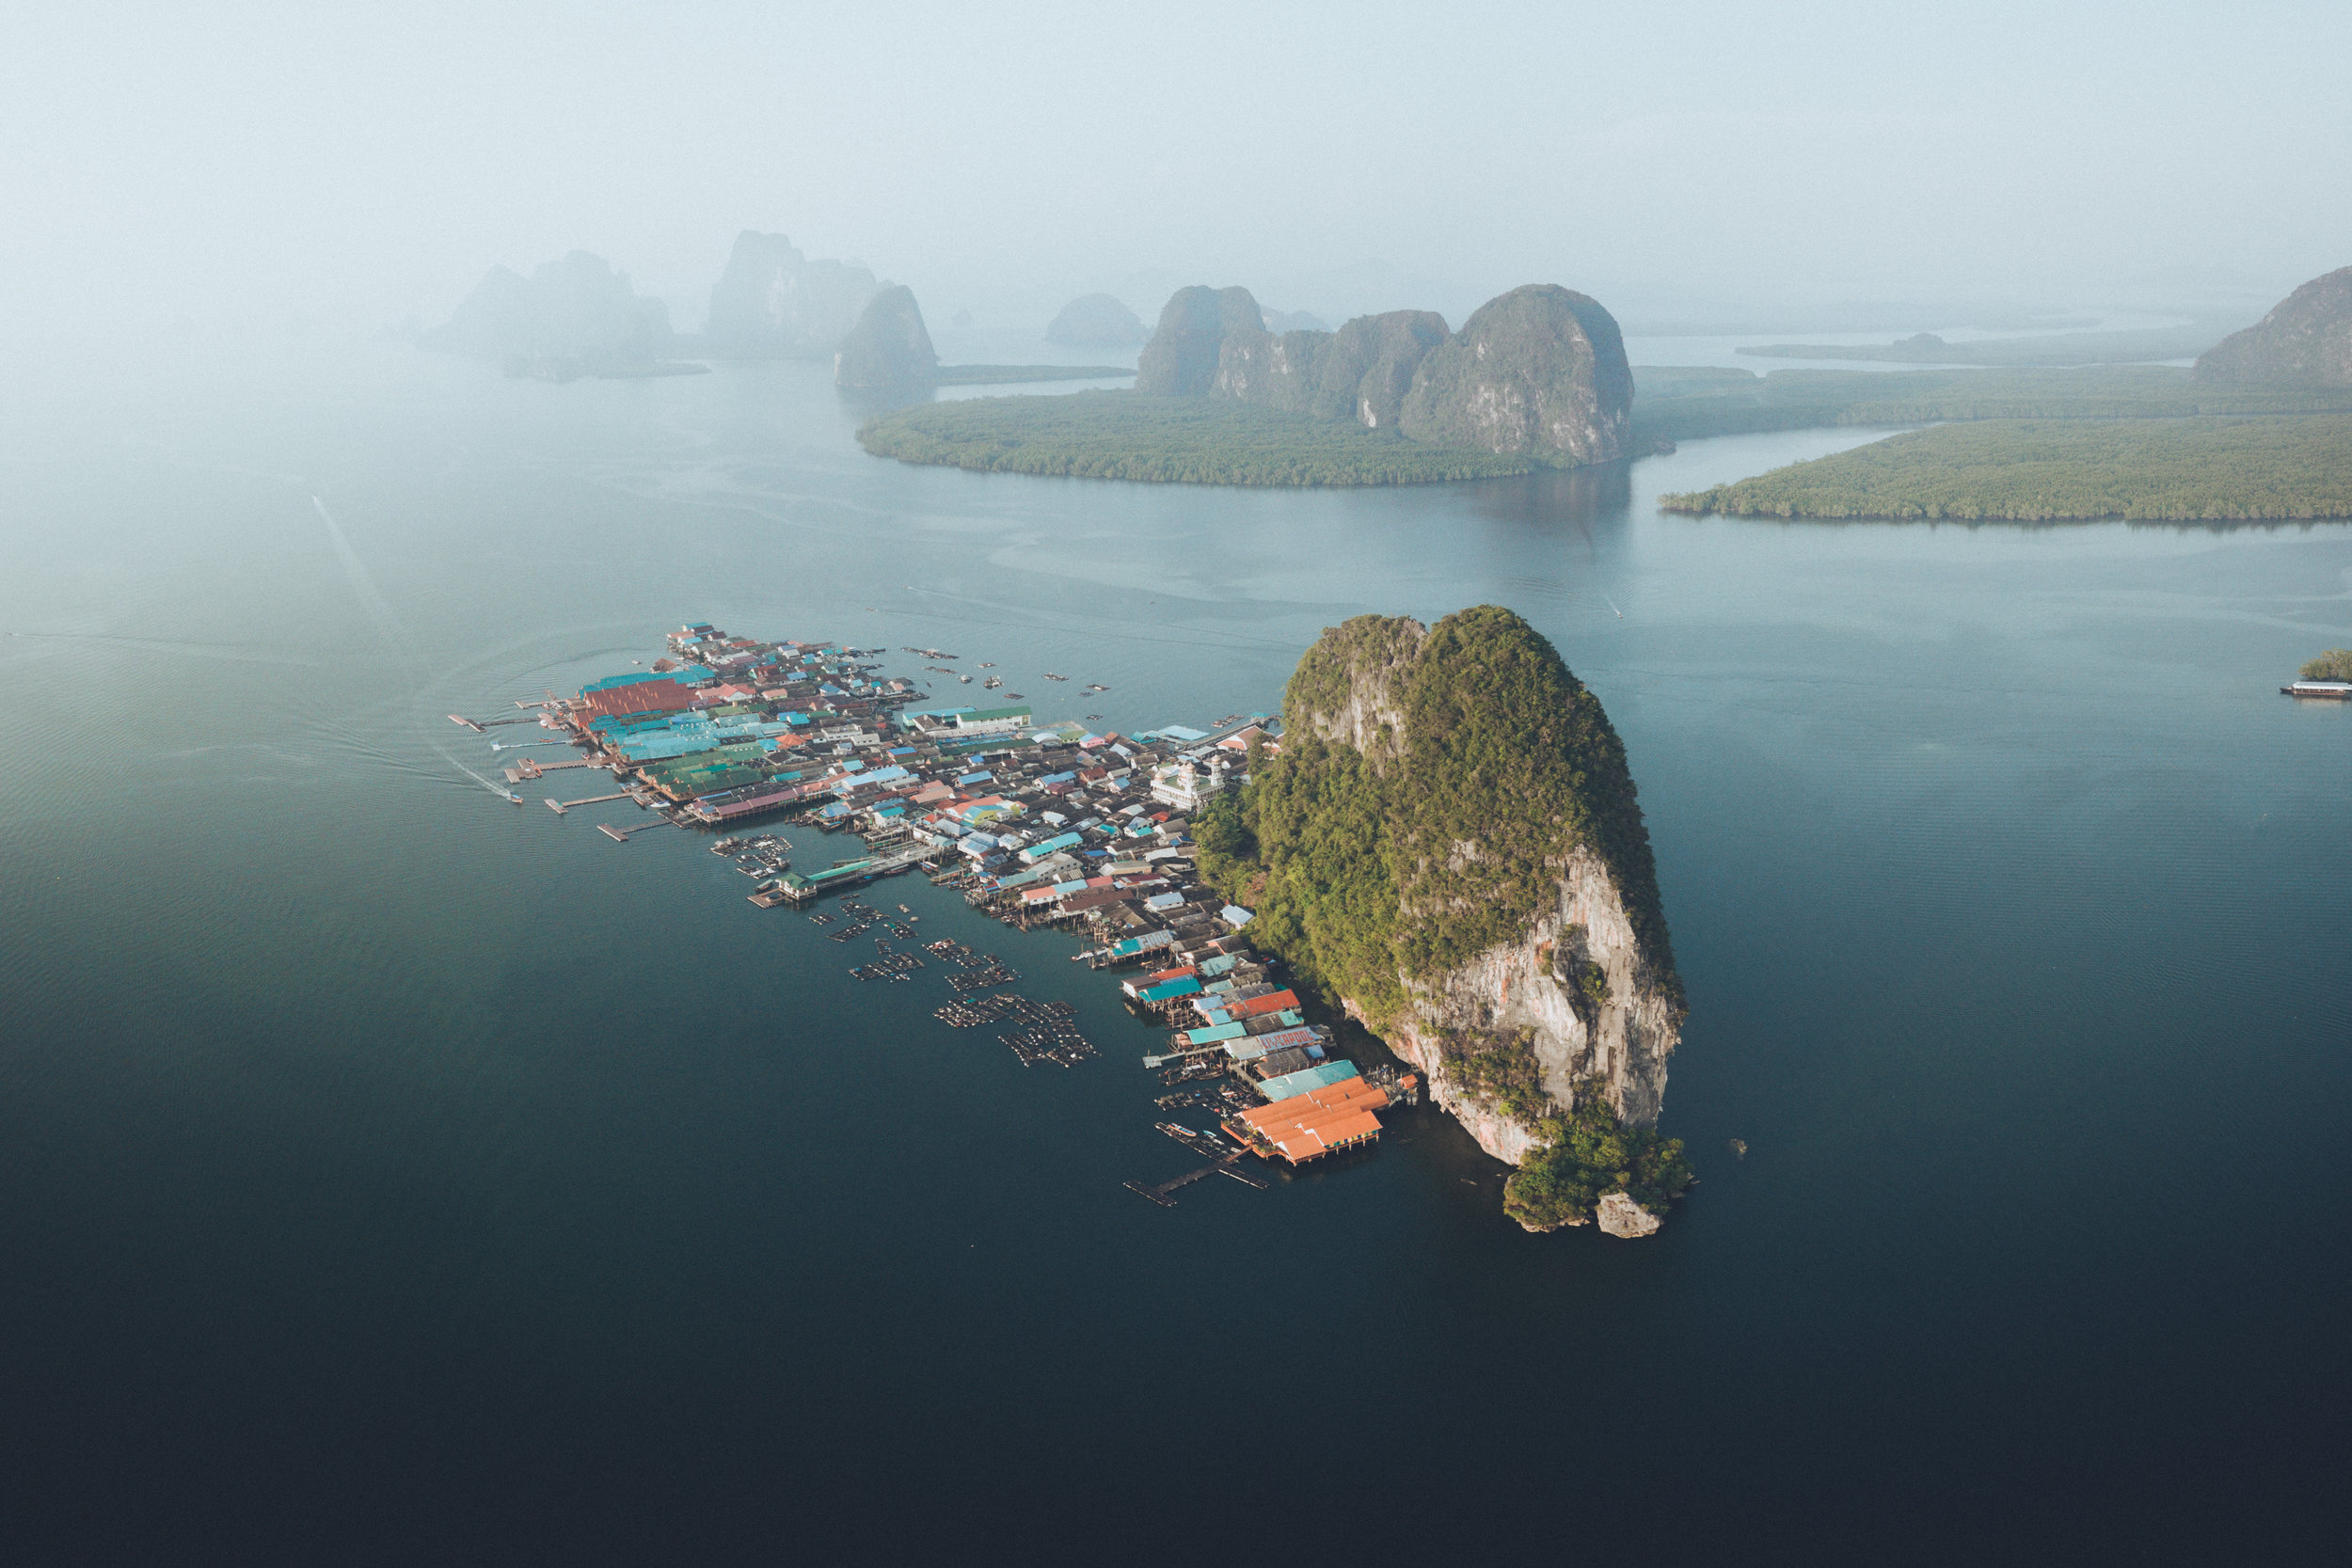 Koh Panyee from above